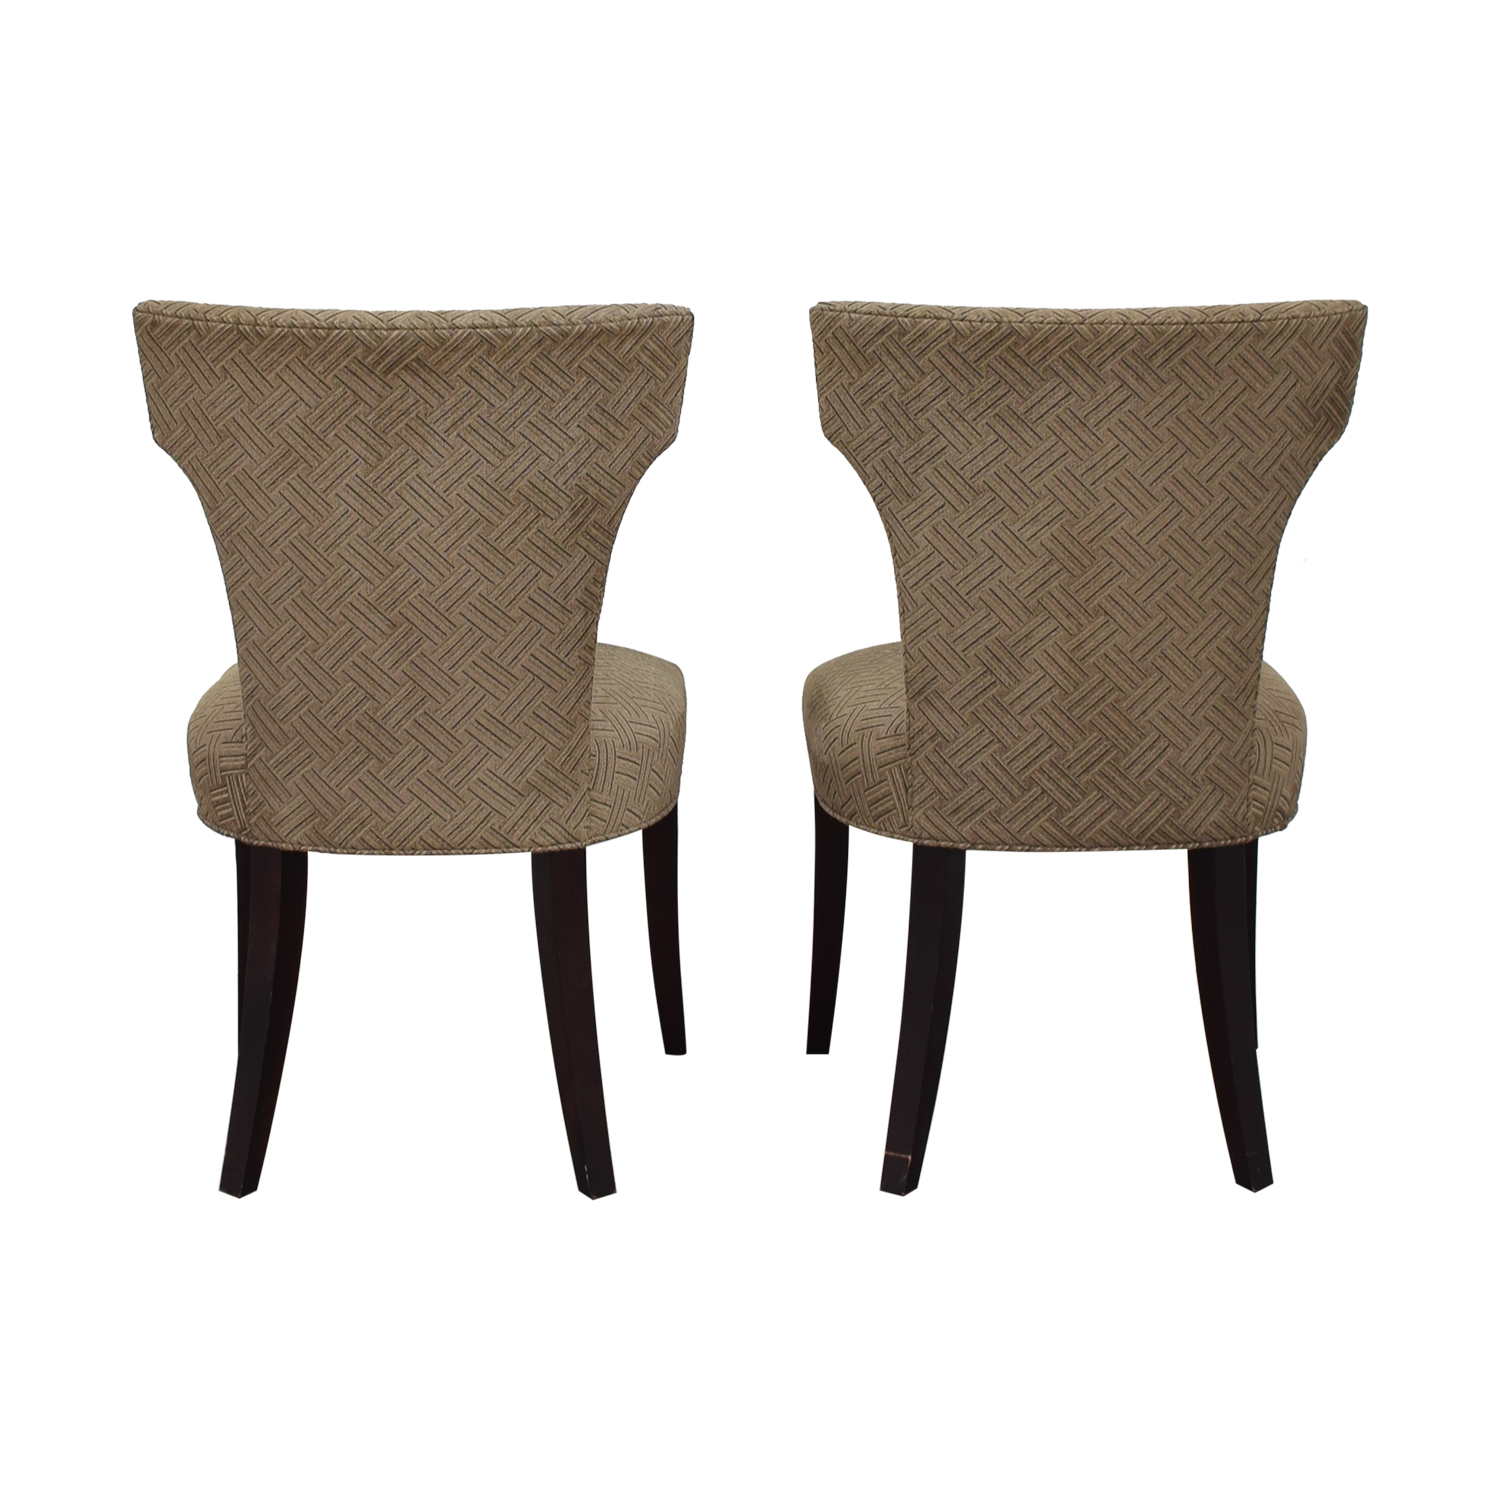 Crate & Barrel Crate & Barrel Sasha Upholstered Dining Chairs